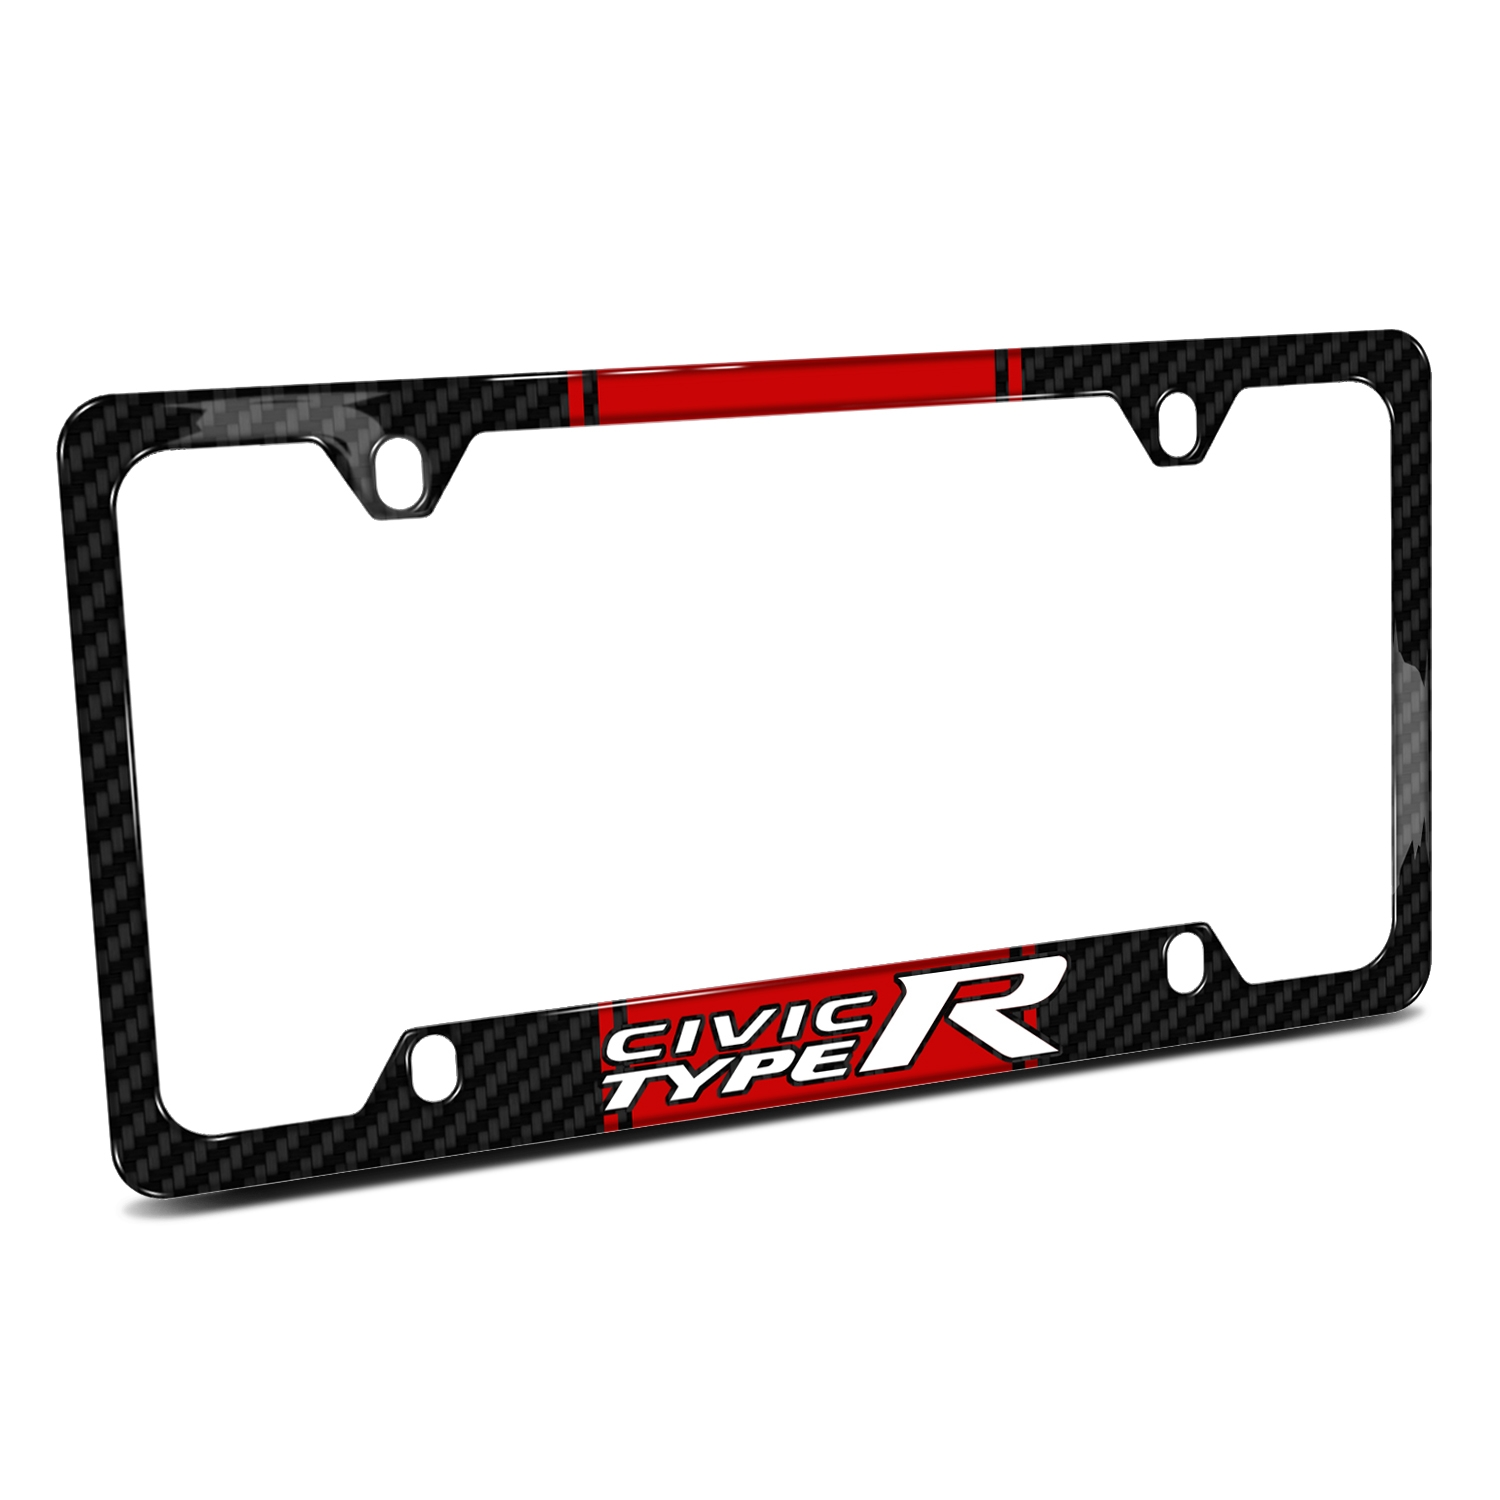 Honda Civic Type R Red Racing Stripe Black Real Carbon Fiber 50 States License Plate Frame